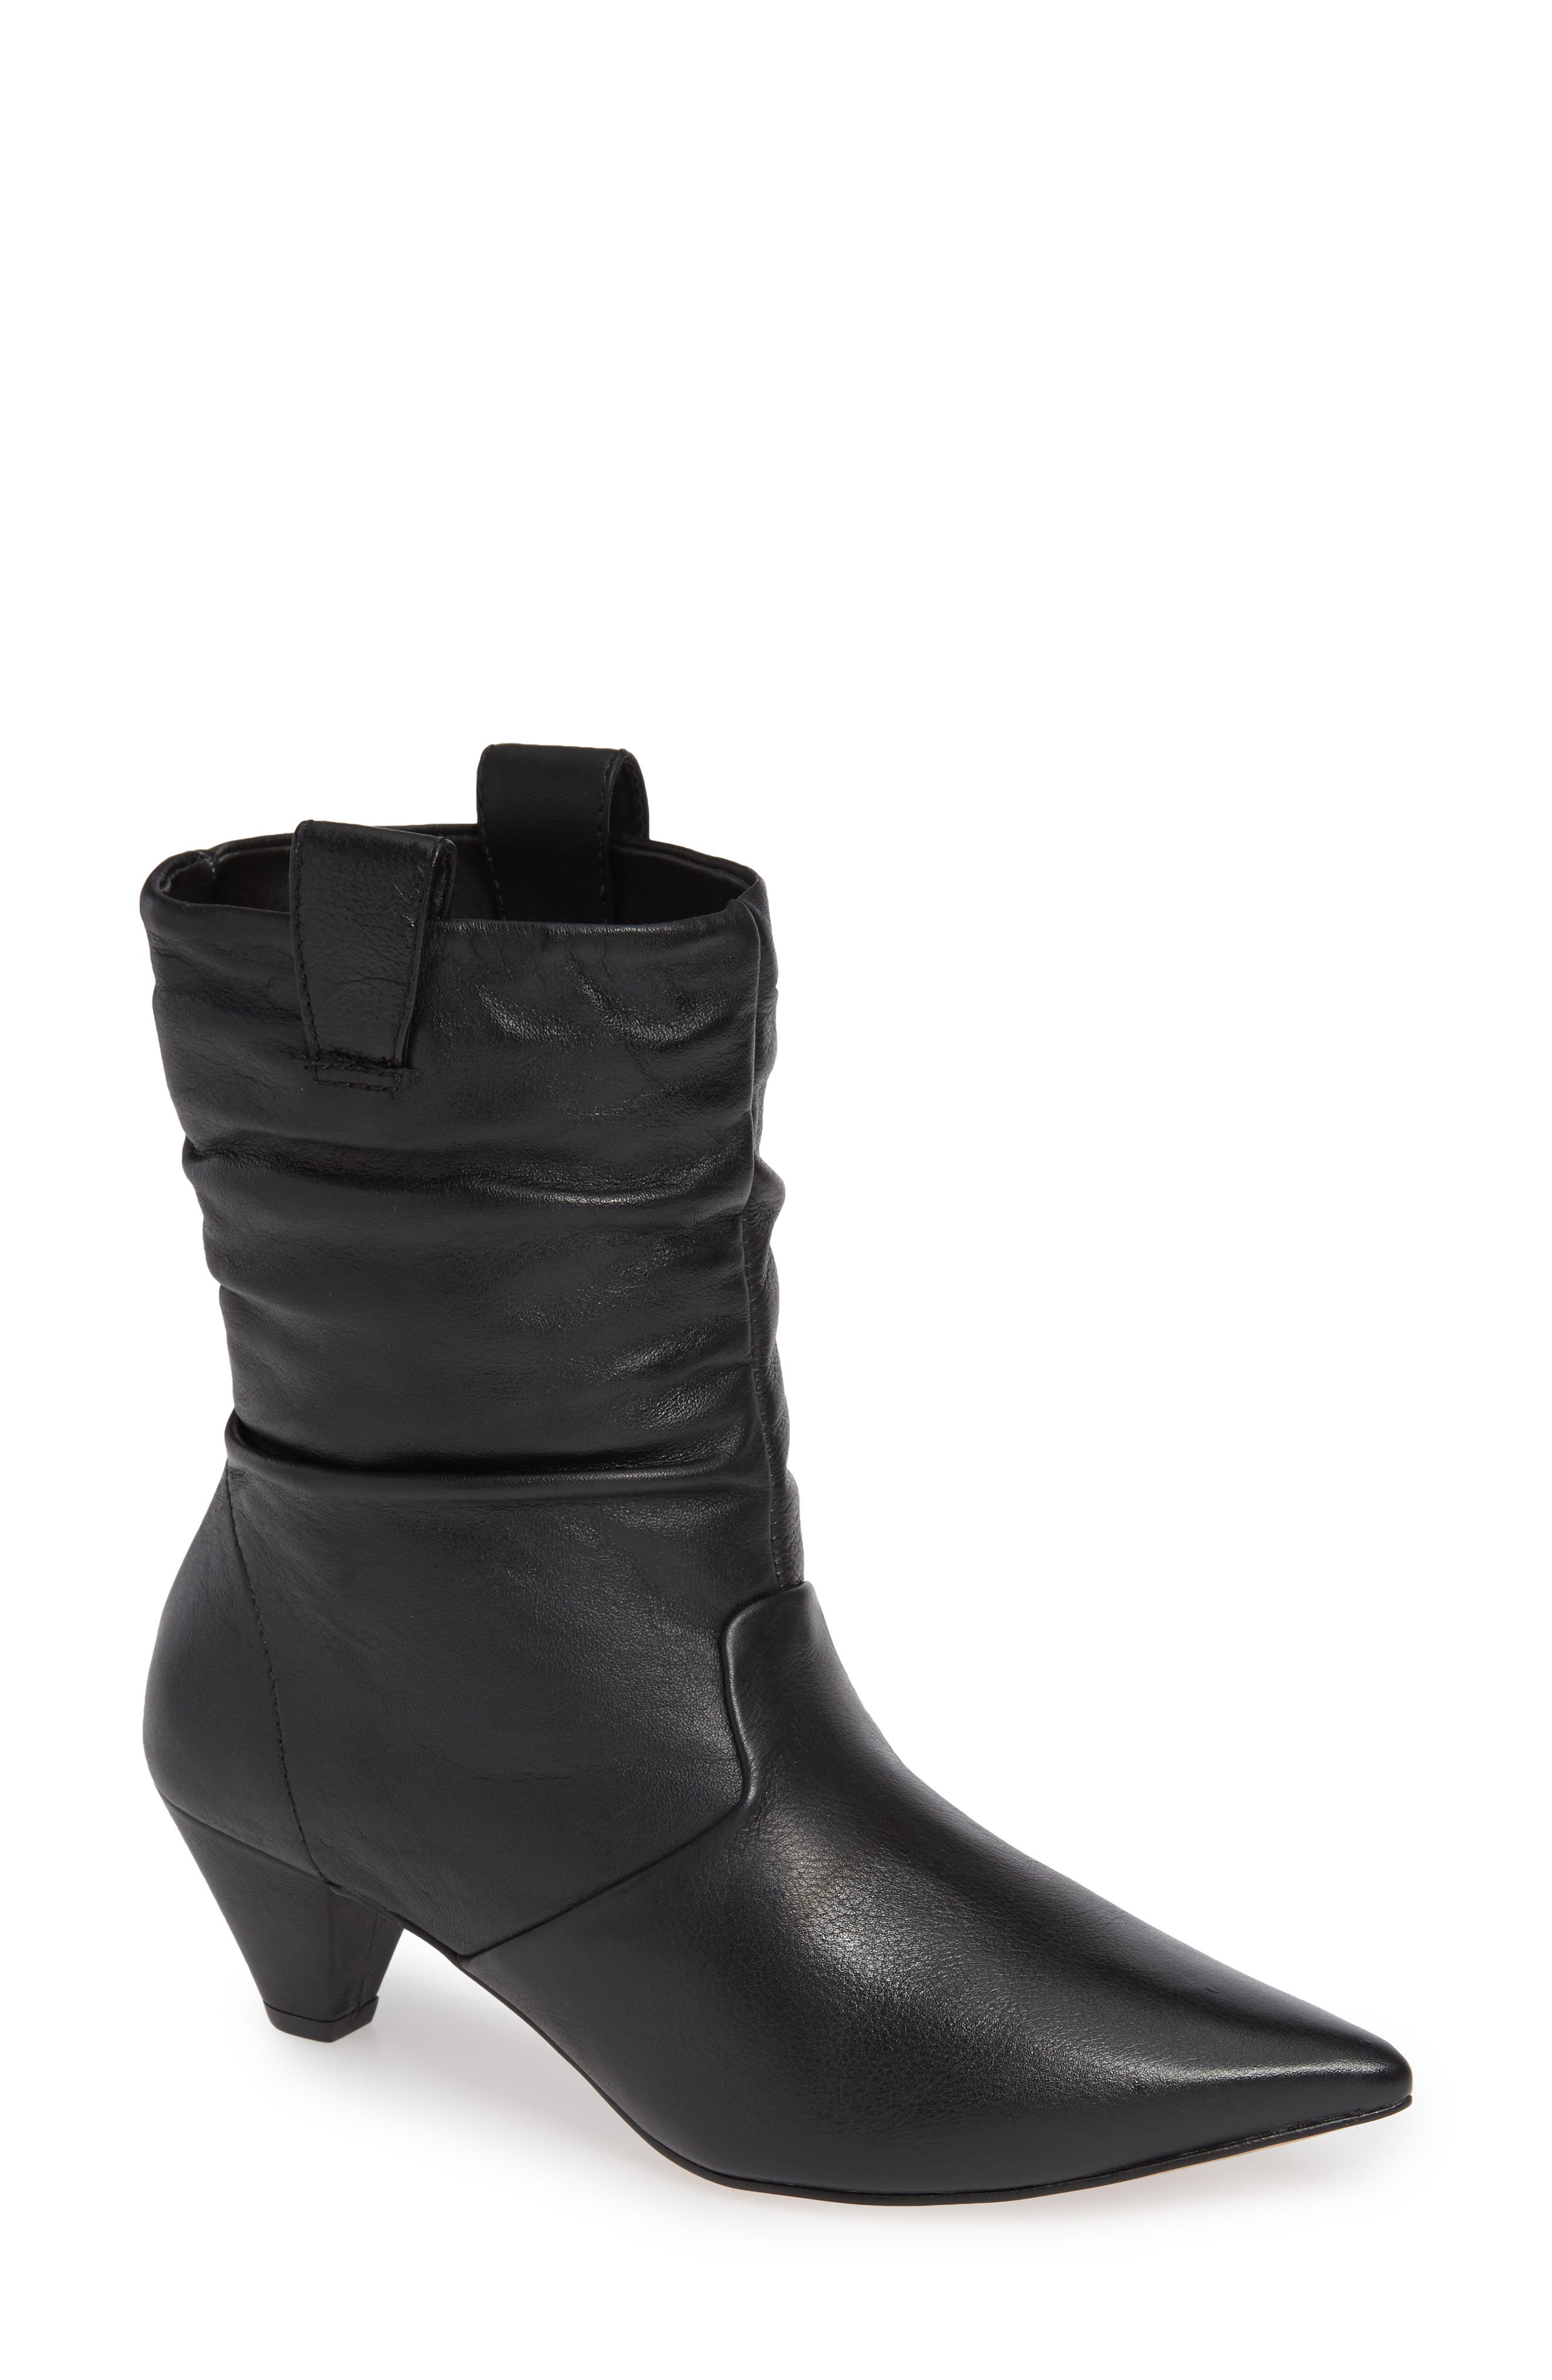 LUST FOR LIFE Plum Bootie in Black Leather